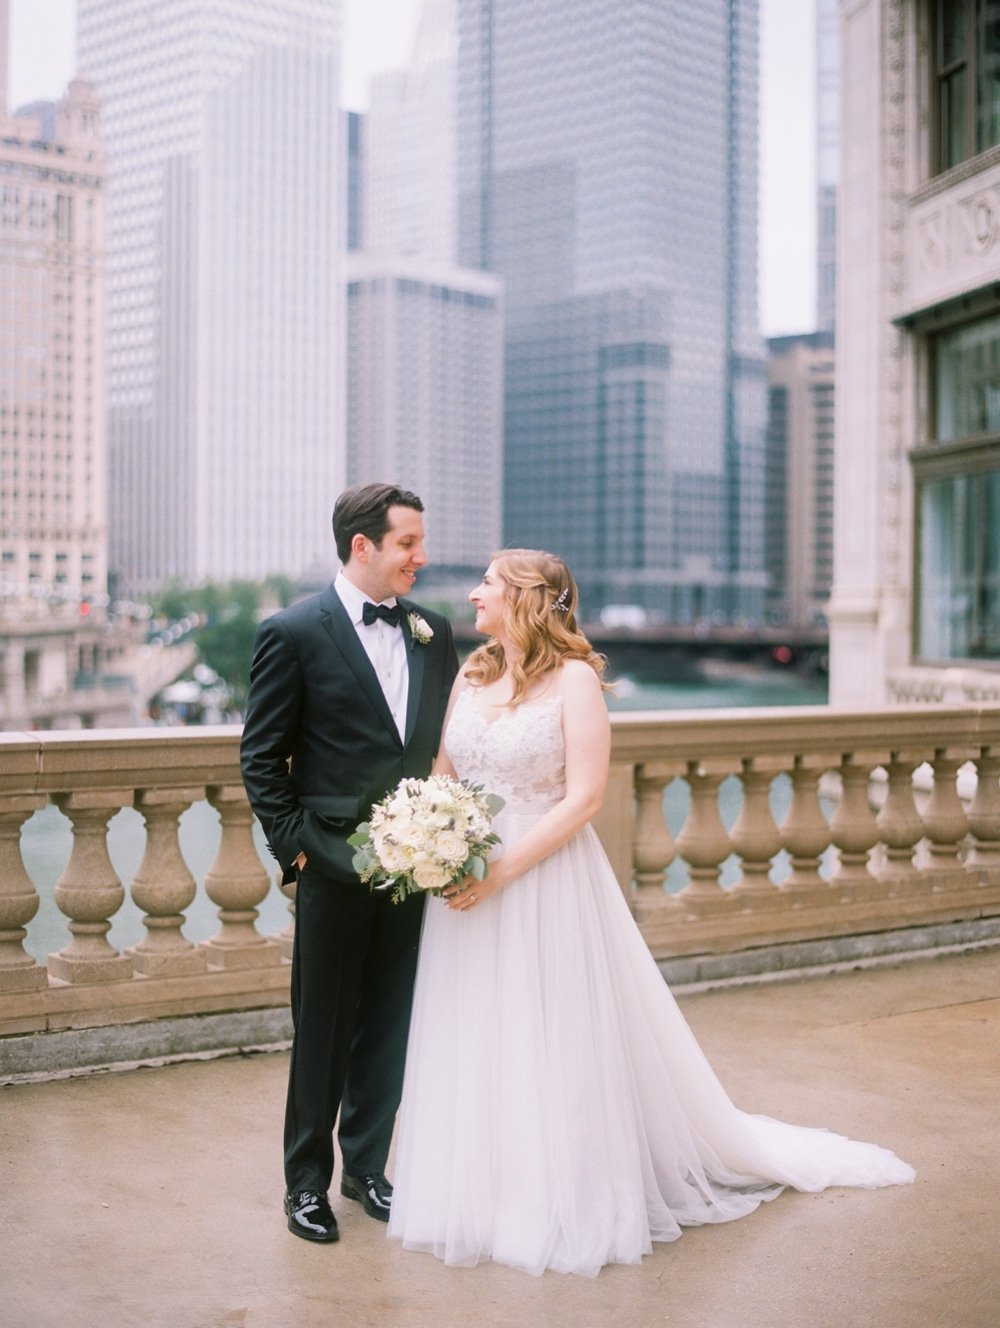 kristin-la-voie-photography-wyndham-grand-chicago-jewish-wedding-169